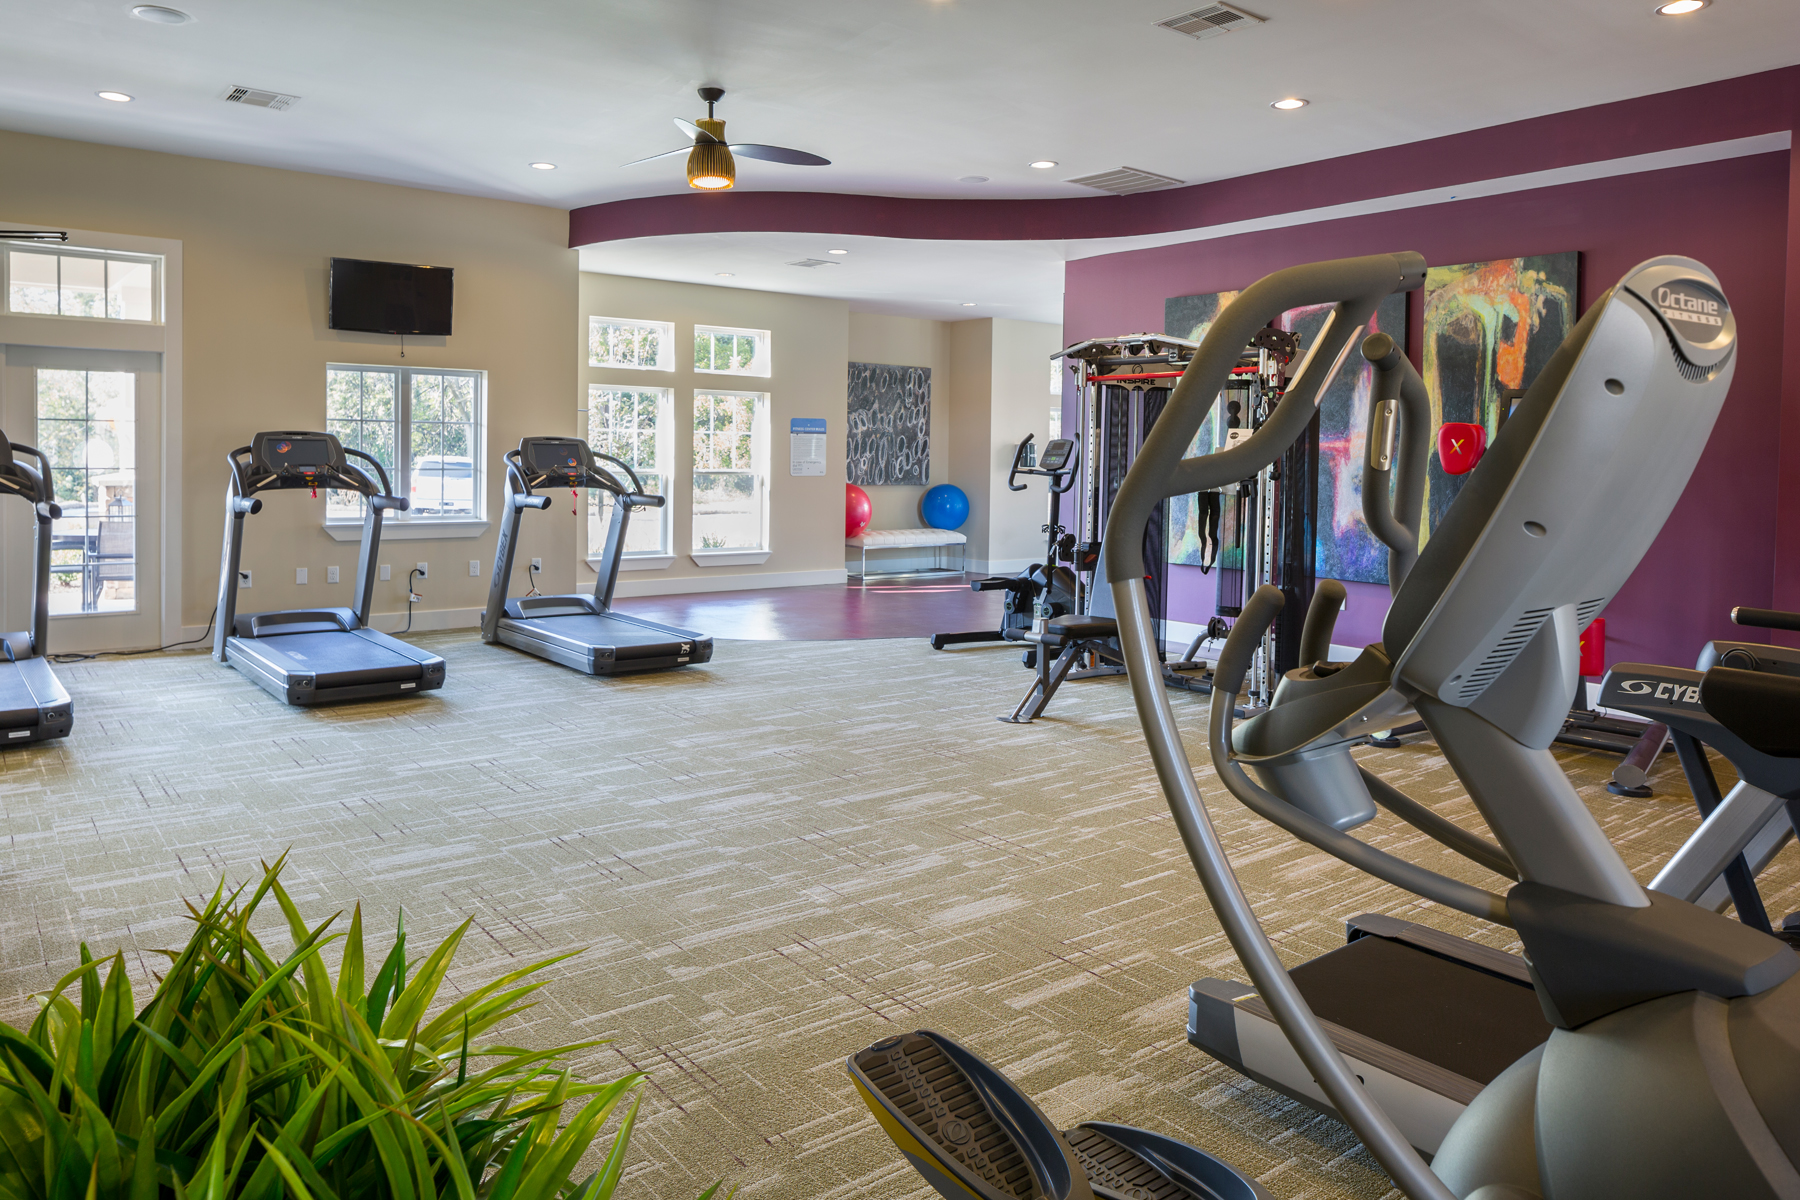 Workout room with treadmills and weight machines